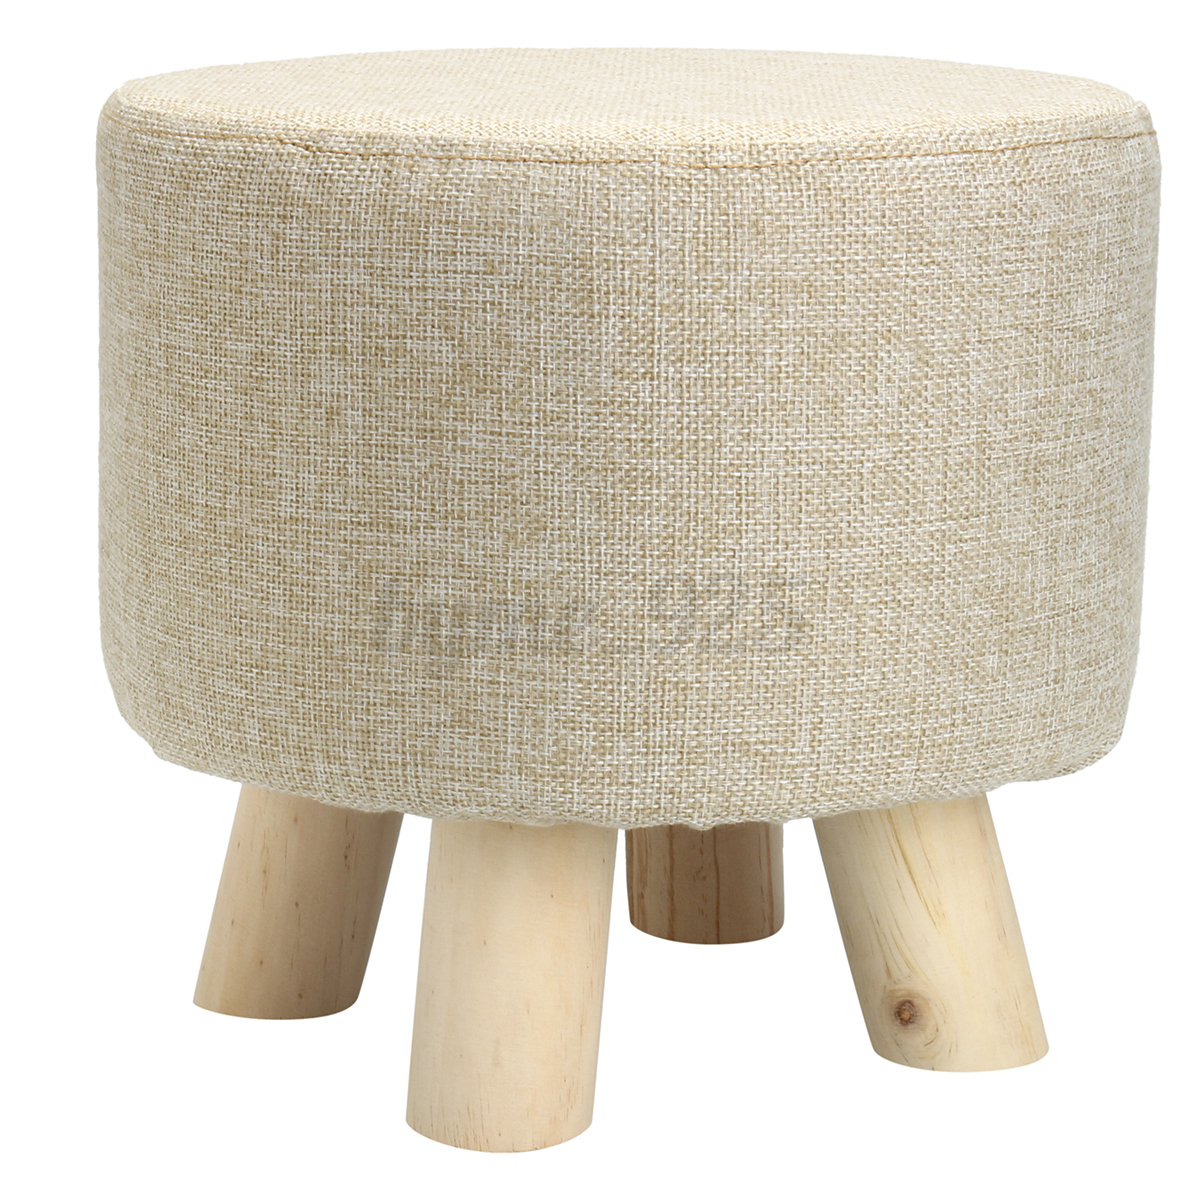 Footstool Small Round Wood Pouffe Chair Ottoman Foot Stool Foot Rest ...